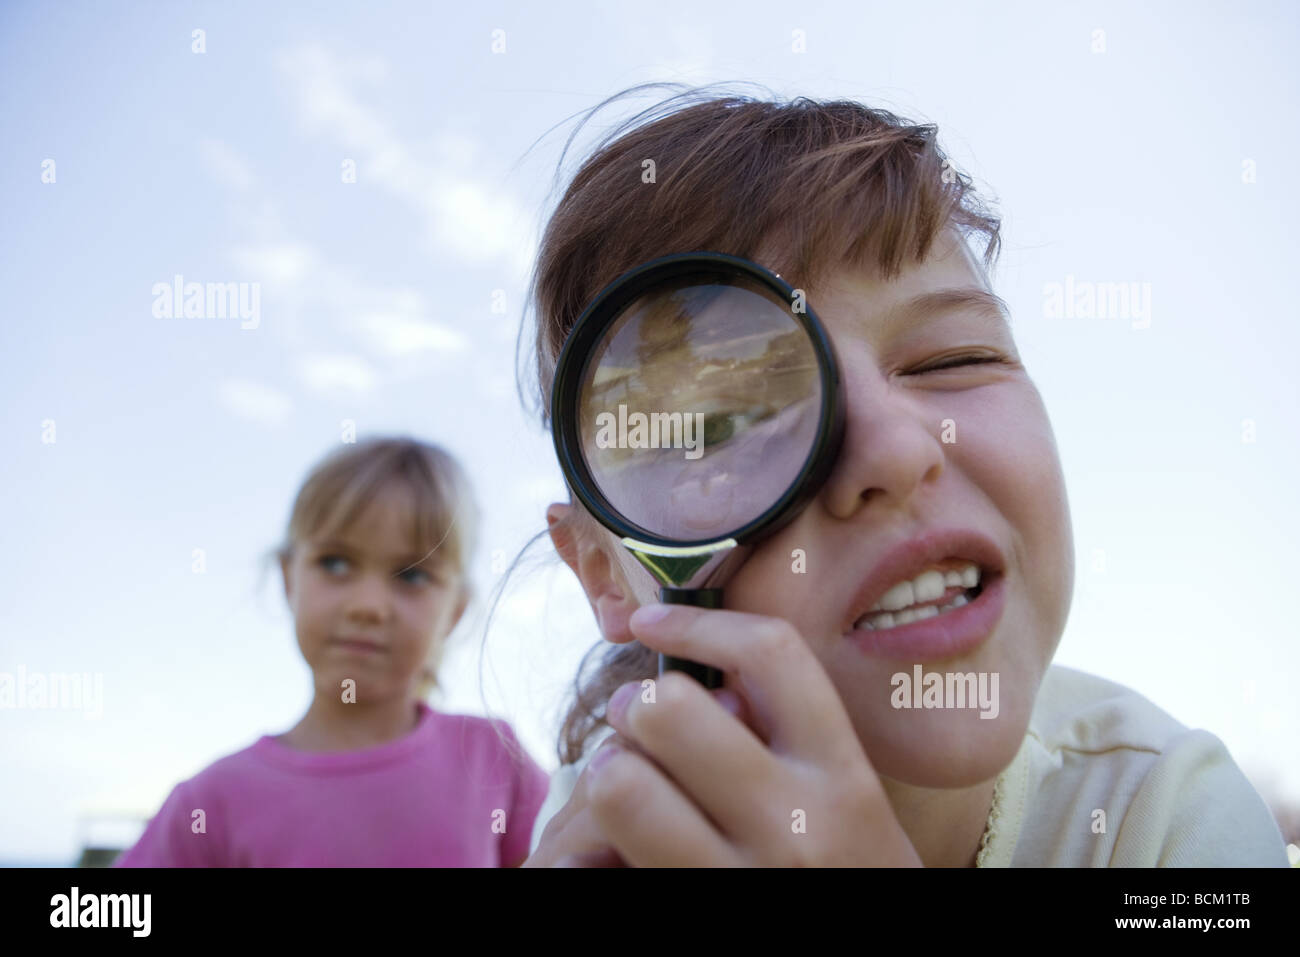 Girl looking through magnifying glass, looking at camera, close-up - Stock Image